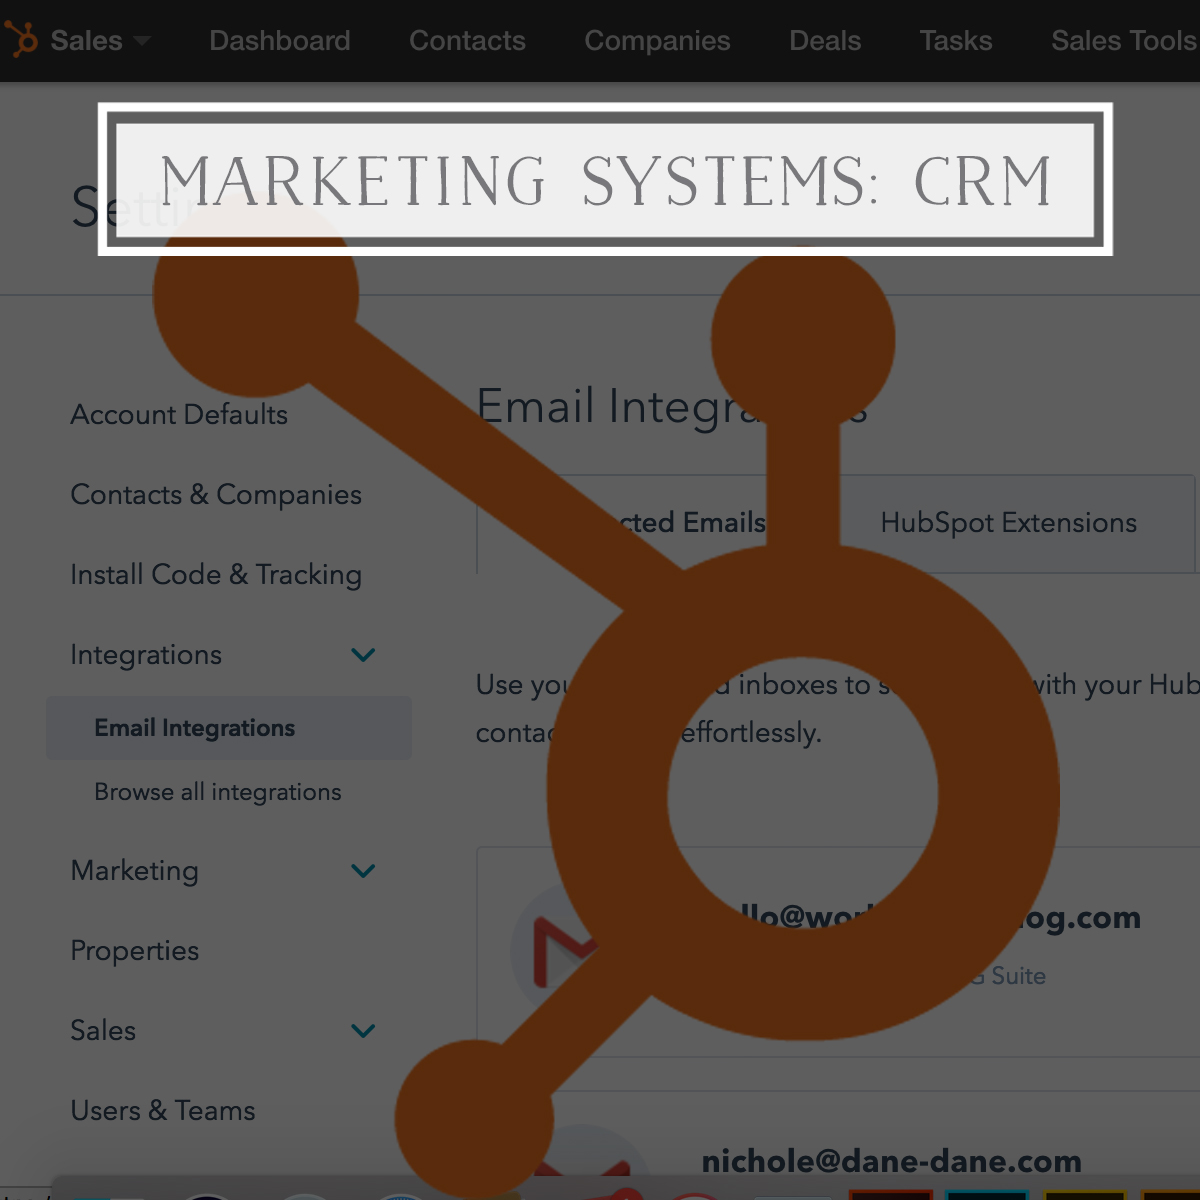 Marketing Systems: CRM